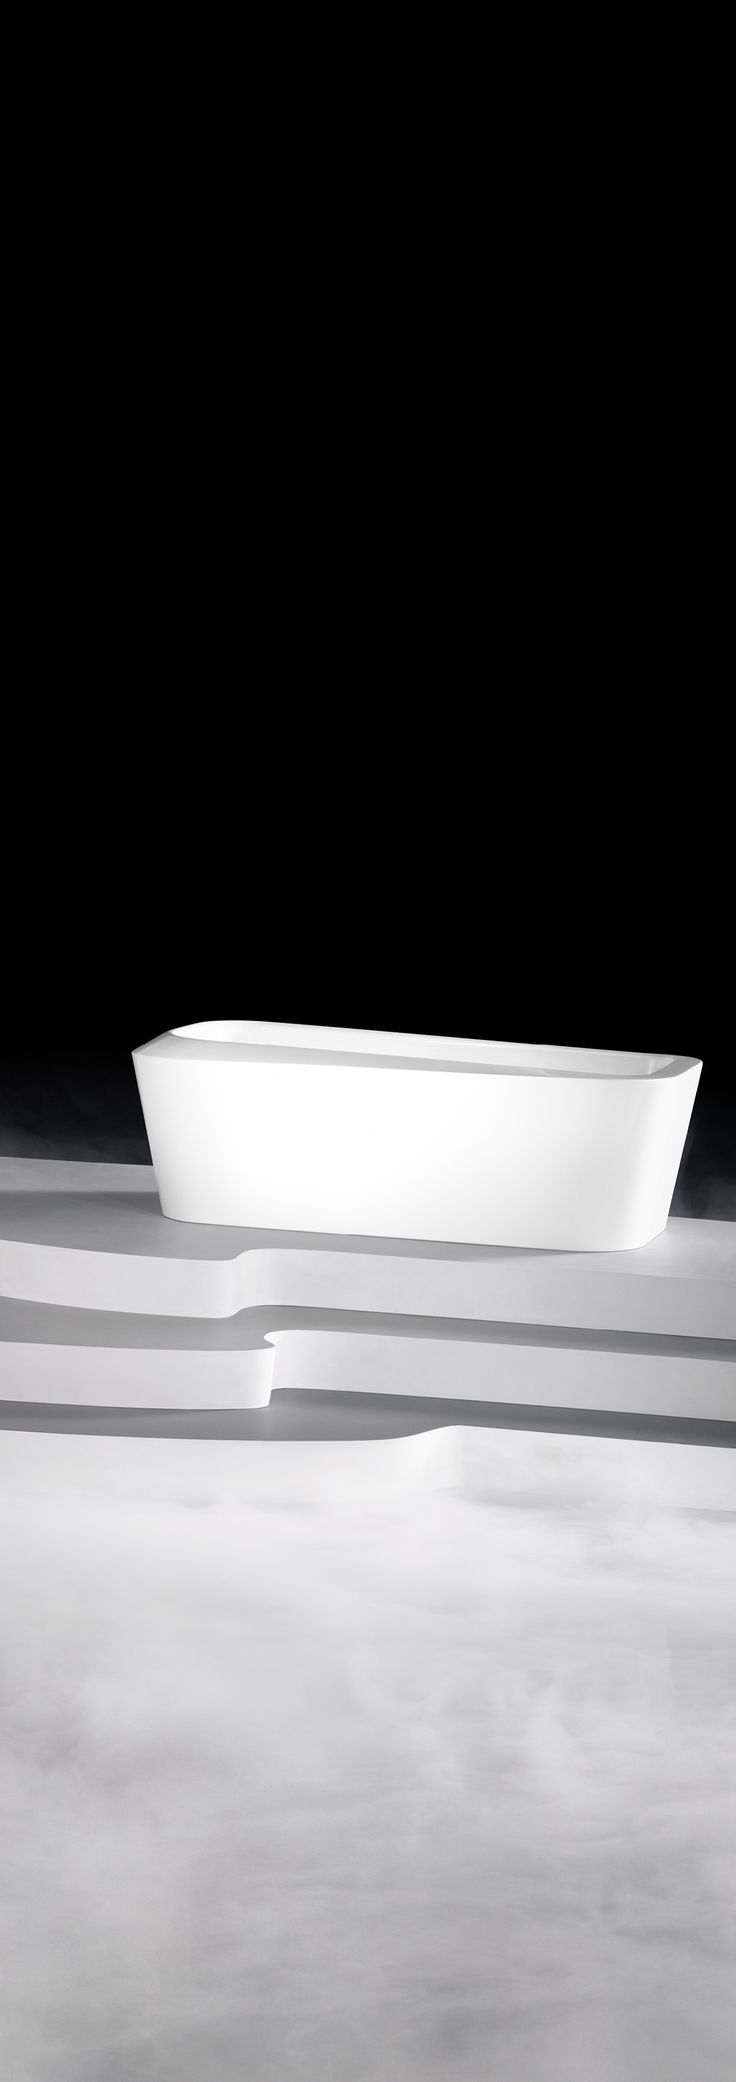 Designed for a single bather, the MEISTERSTÜCK EMERSO bathtub is a luxury to be enjoyed entirely by oneself. Ergonomics and design are at one with each other in this freestanding bathtub. (by Arik Levy) #Kaldewei #Bathtub #Badewanne #Bath #Design #Arik #Levy